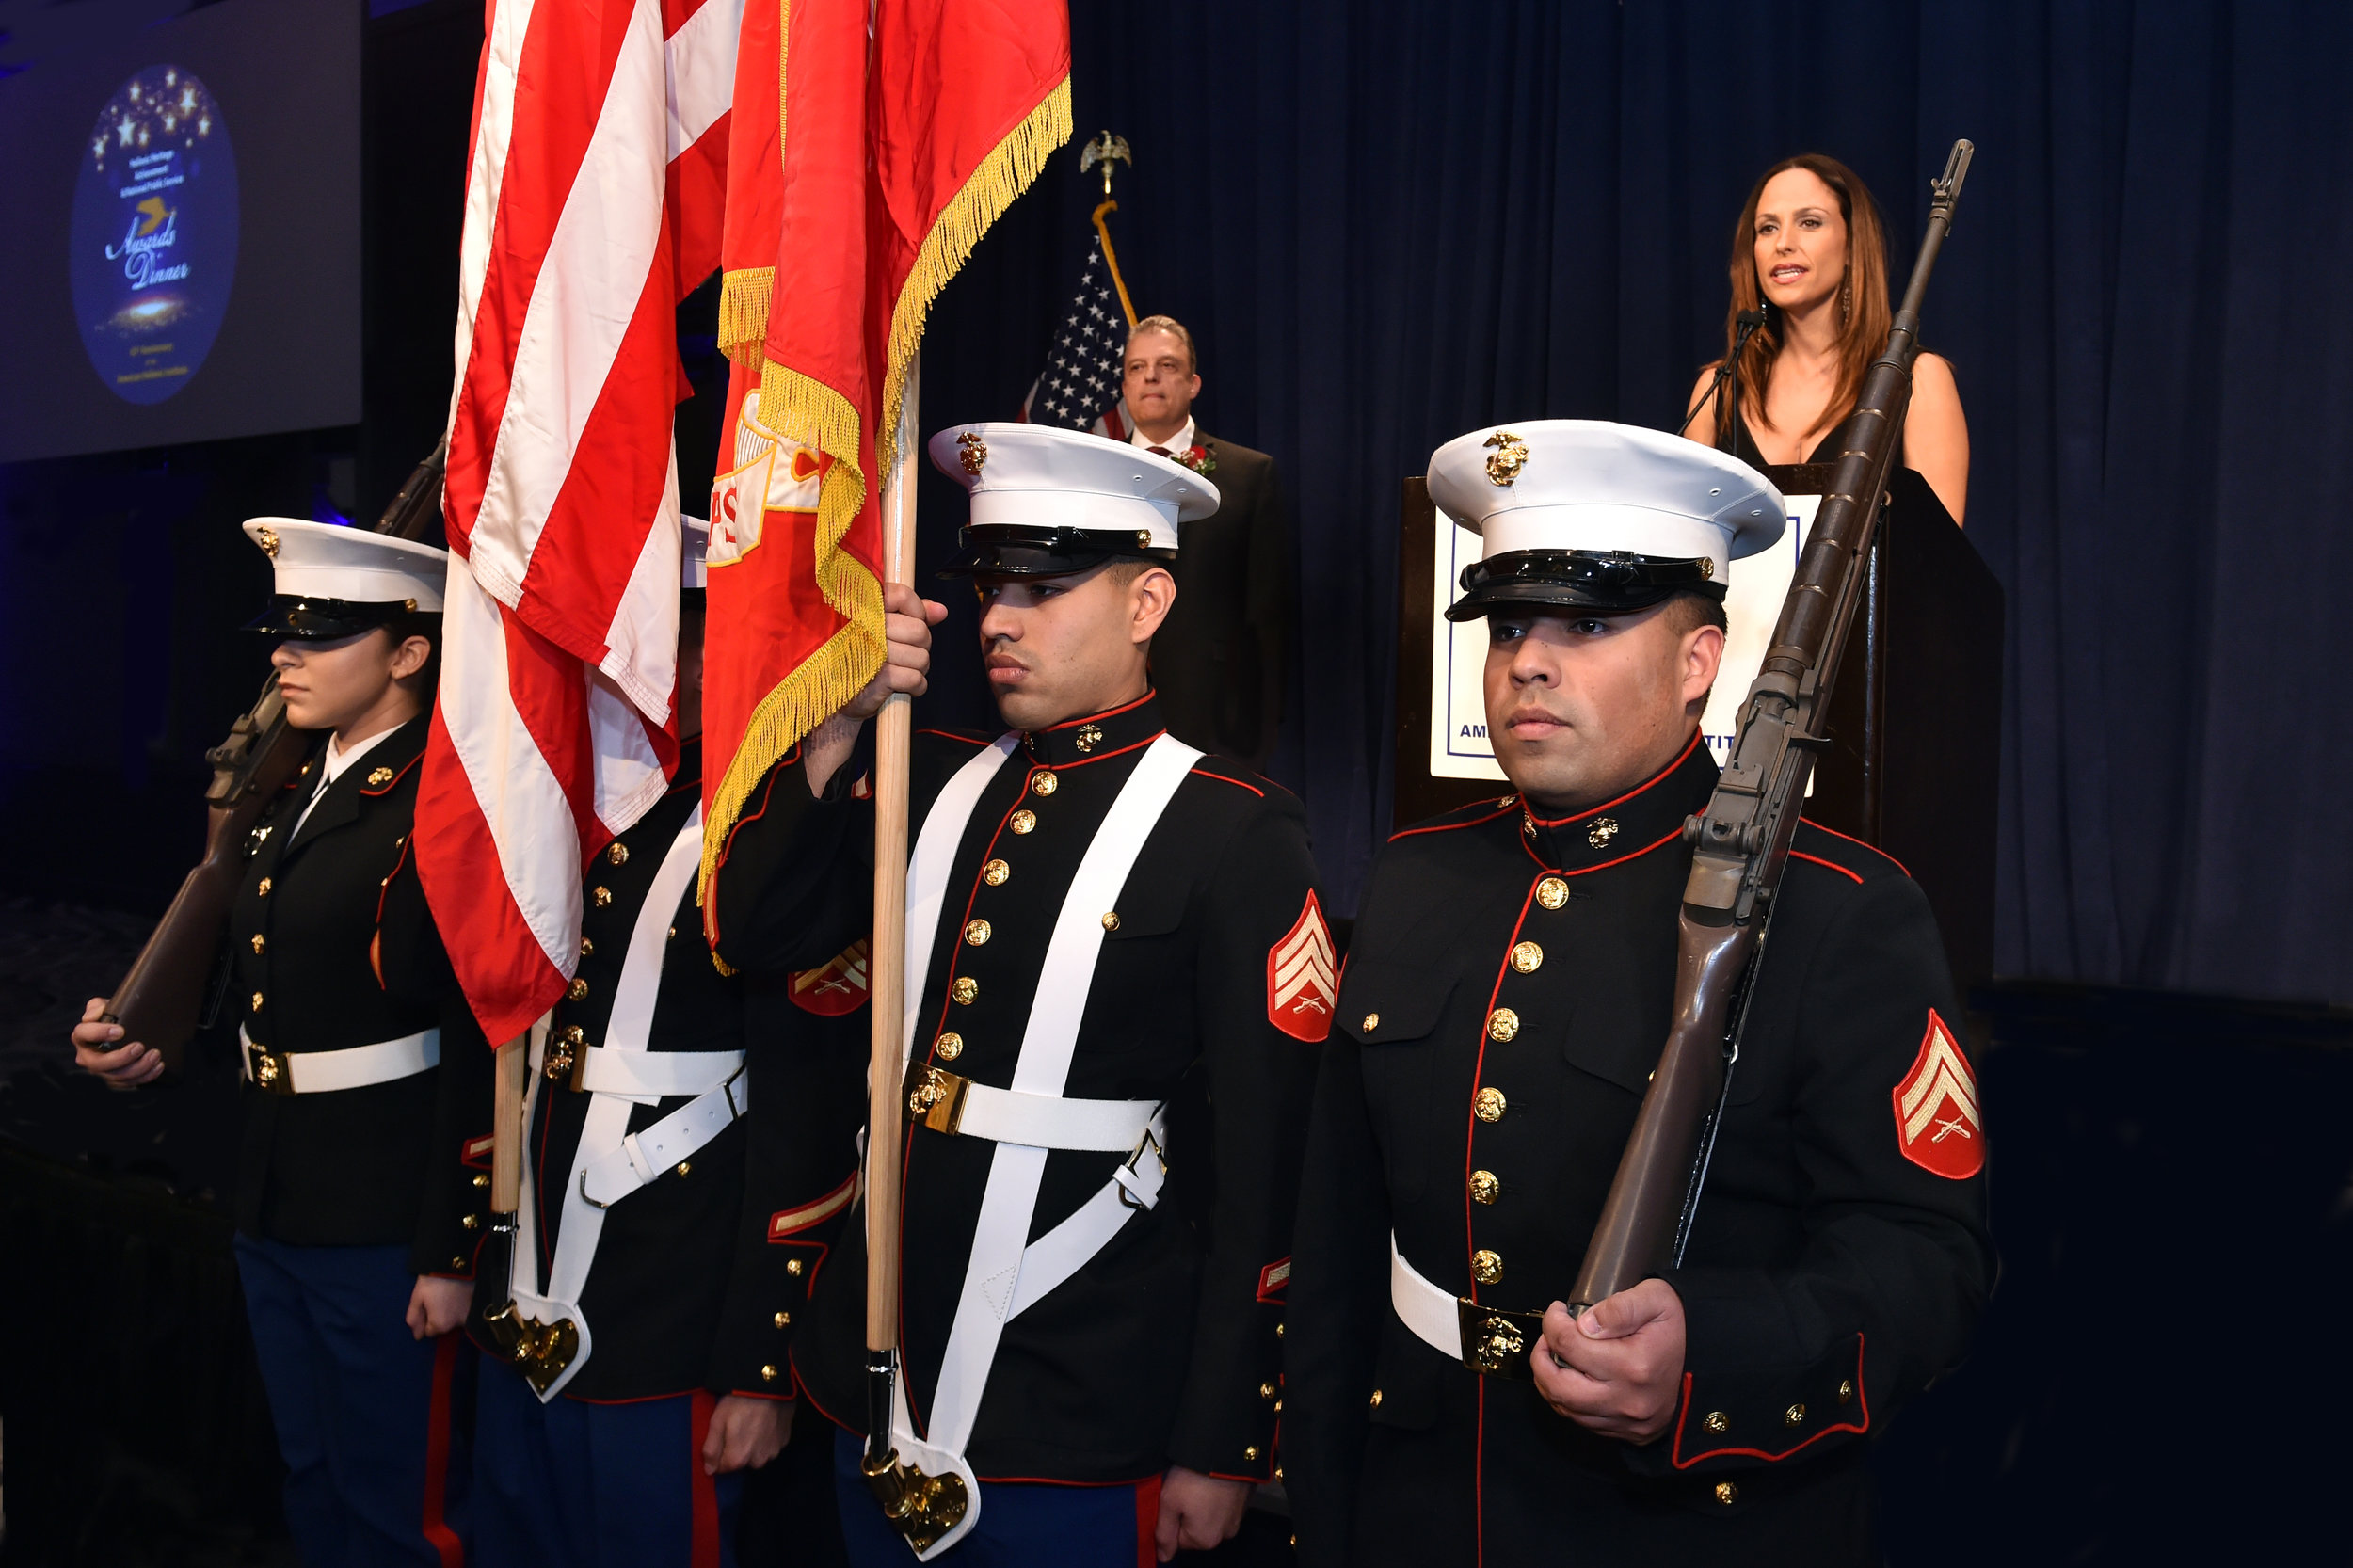 The Marines of Headquarters Battalions present the colors.